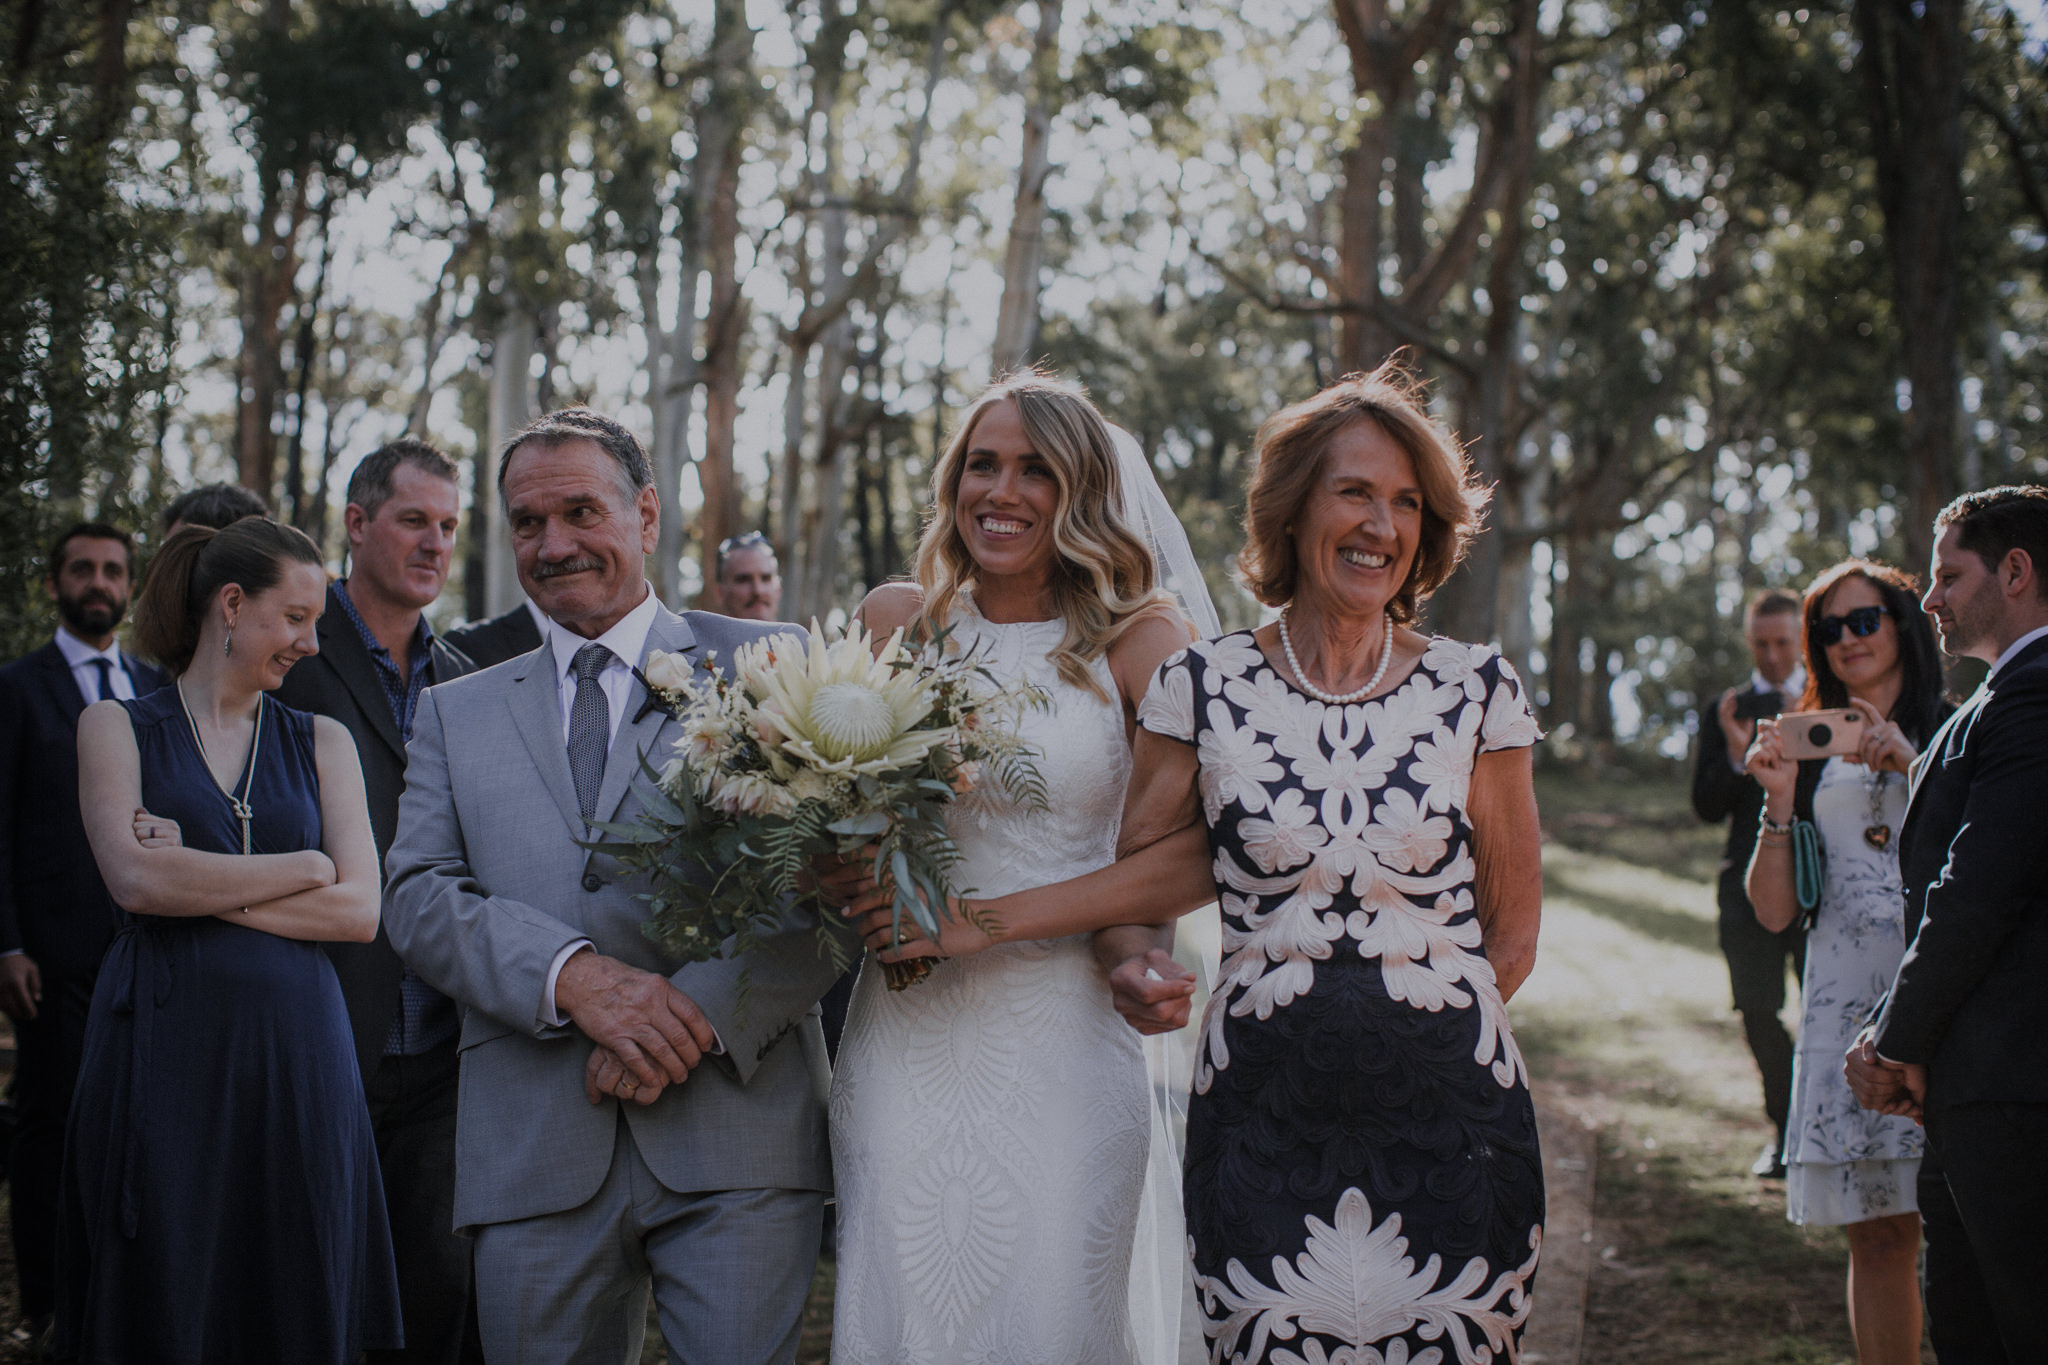 rolan_john_photo_erin+levi_daylesford_wedding-256.jpg